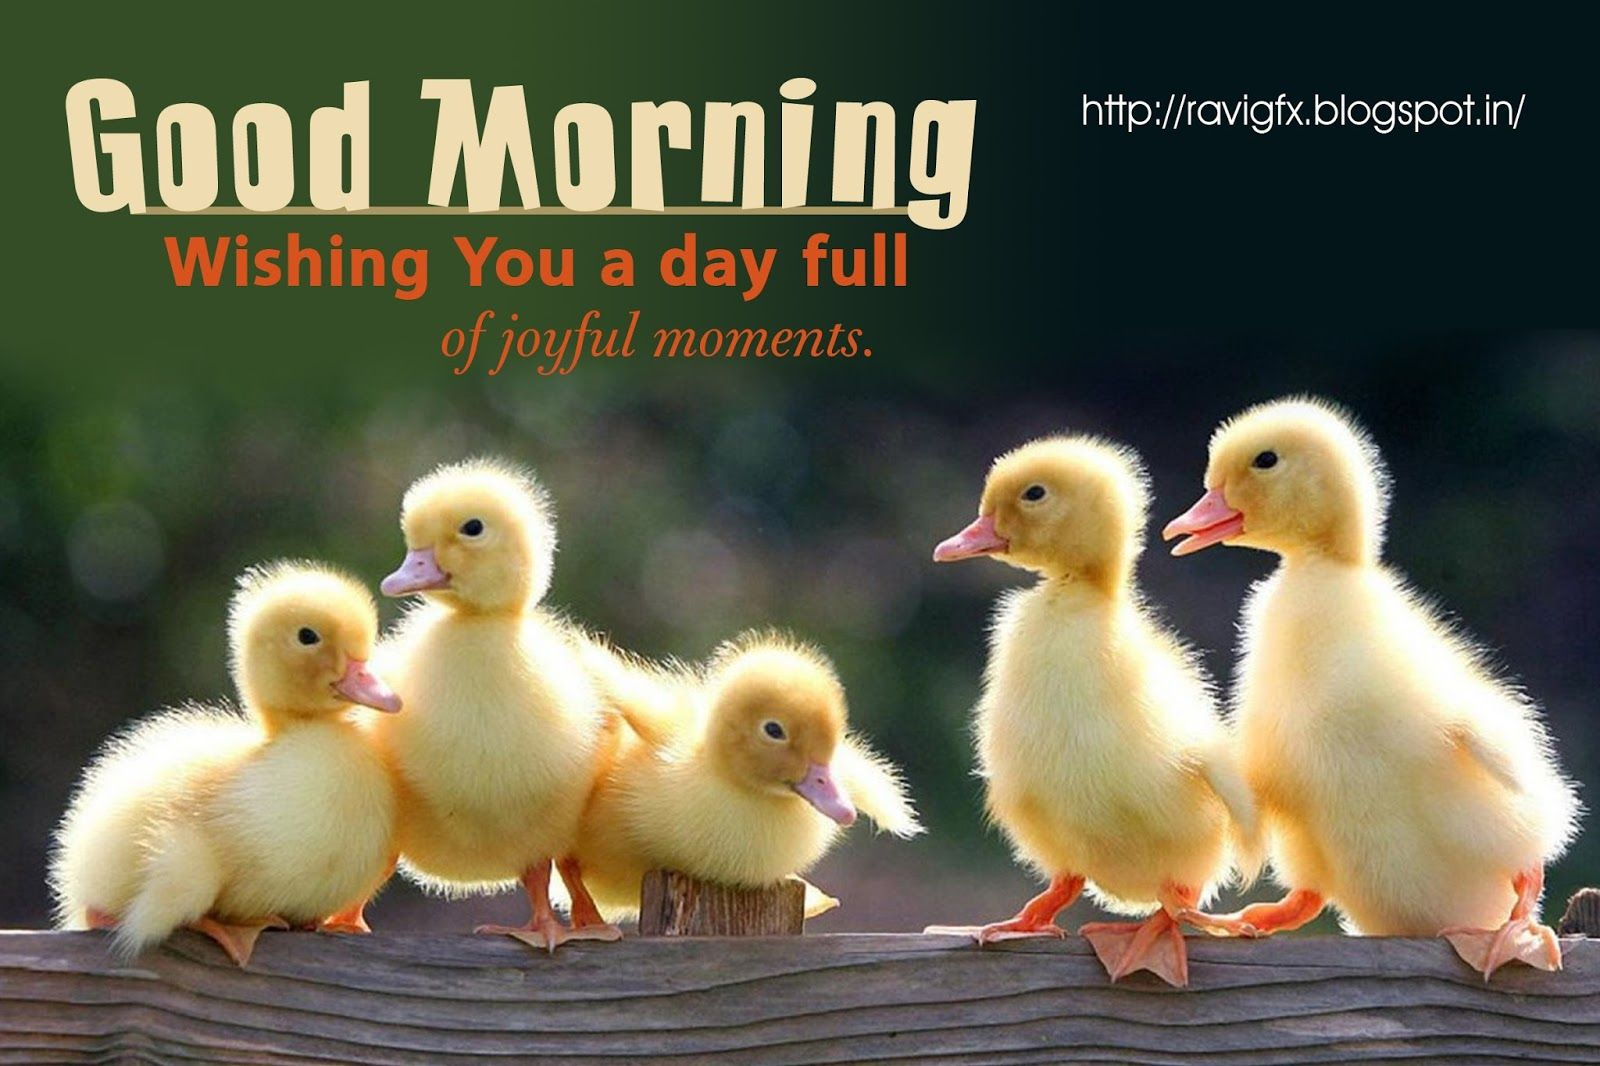 Good morning quotes wishes greetings sayings sms messages happy good good morning quotes wishes greetings sayings sms messages kristyandbryce Choice Image